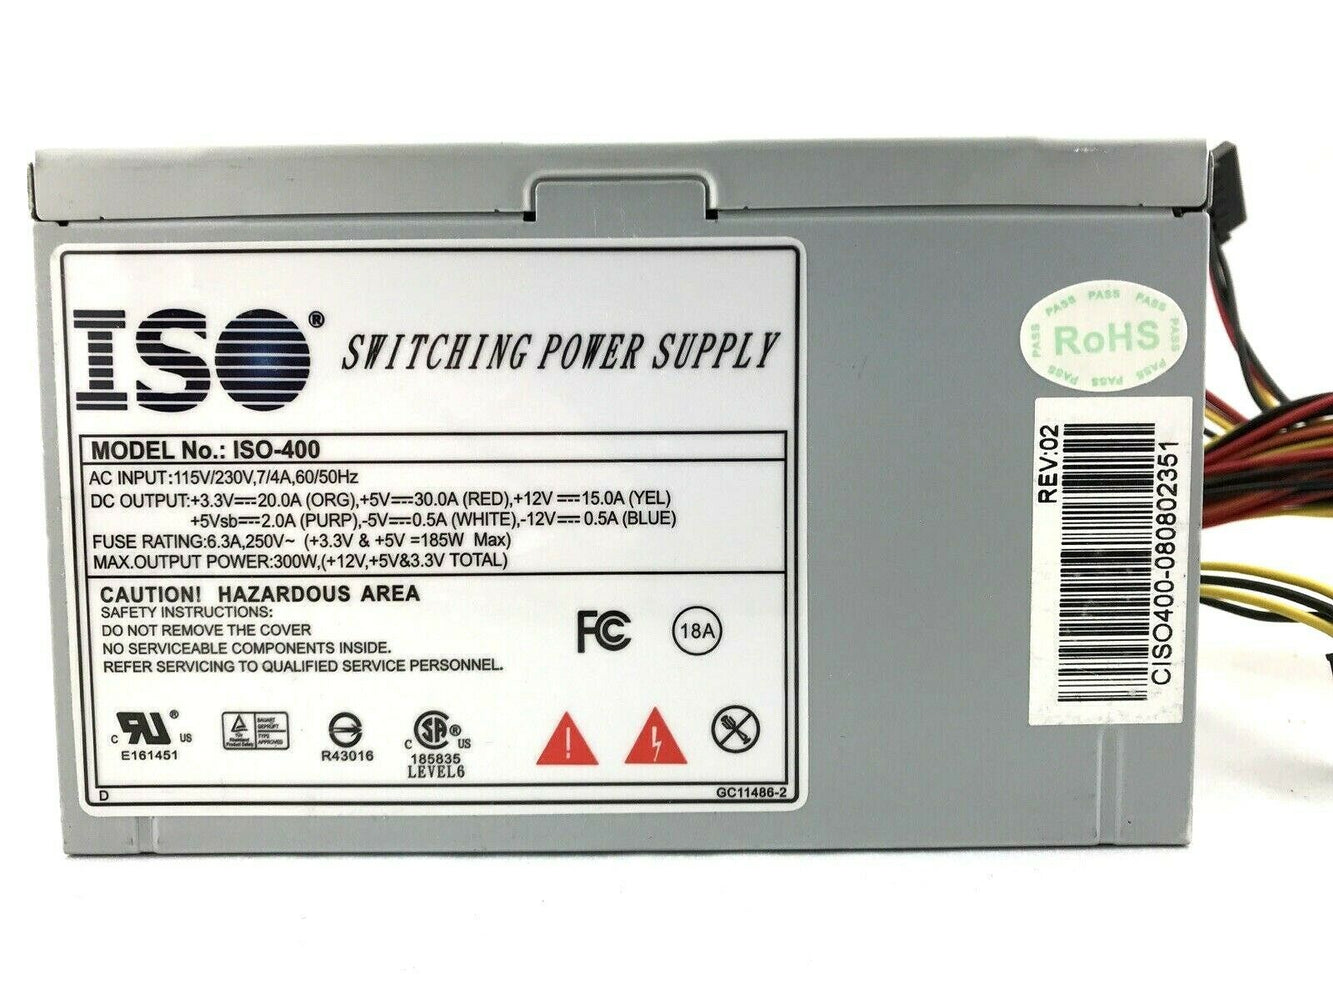 ISO-400 300W Desktop Switching Power Supply ATX PSU 115/230V 300 Watts Fast Ship